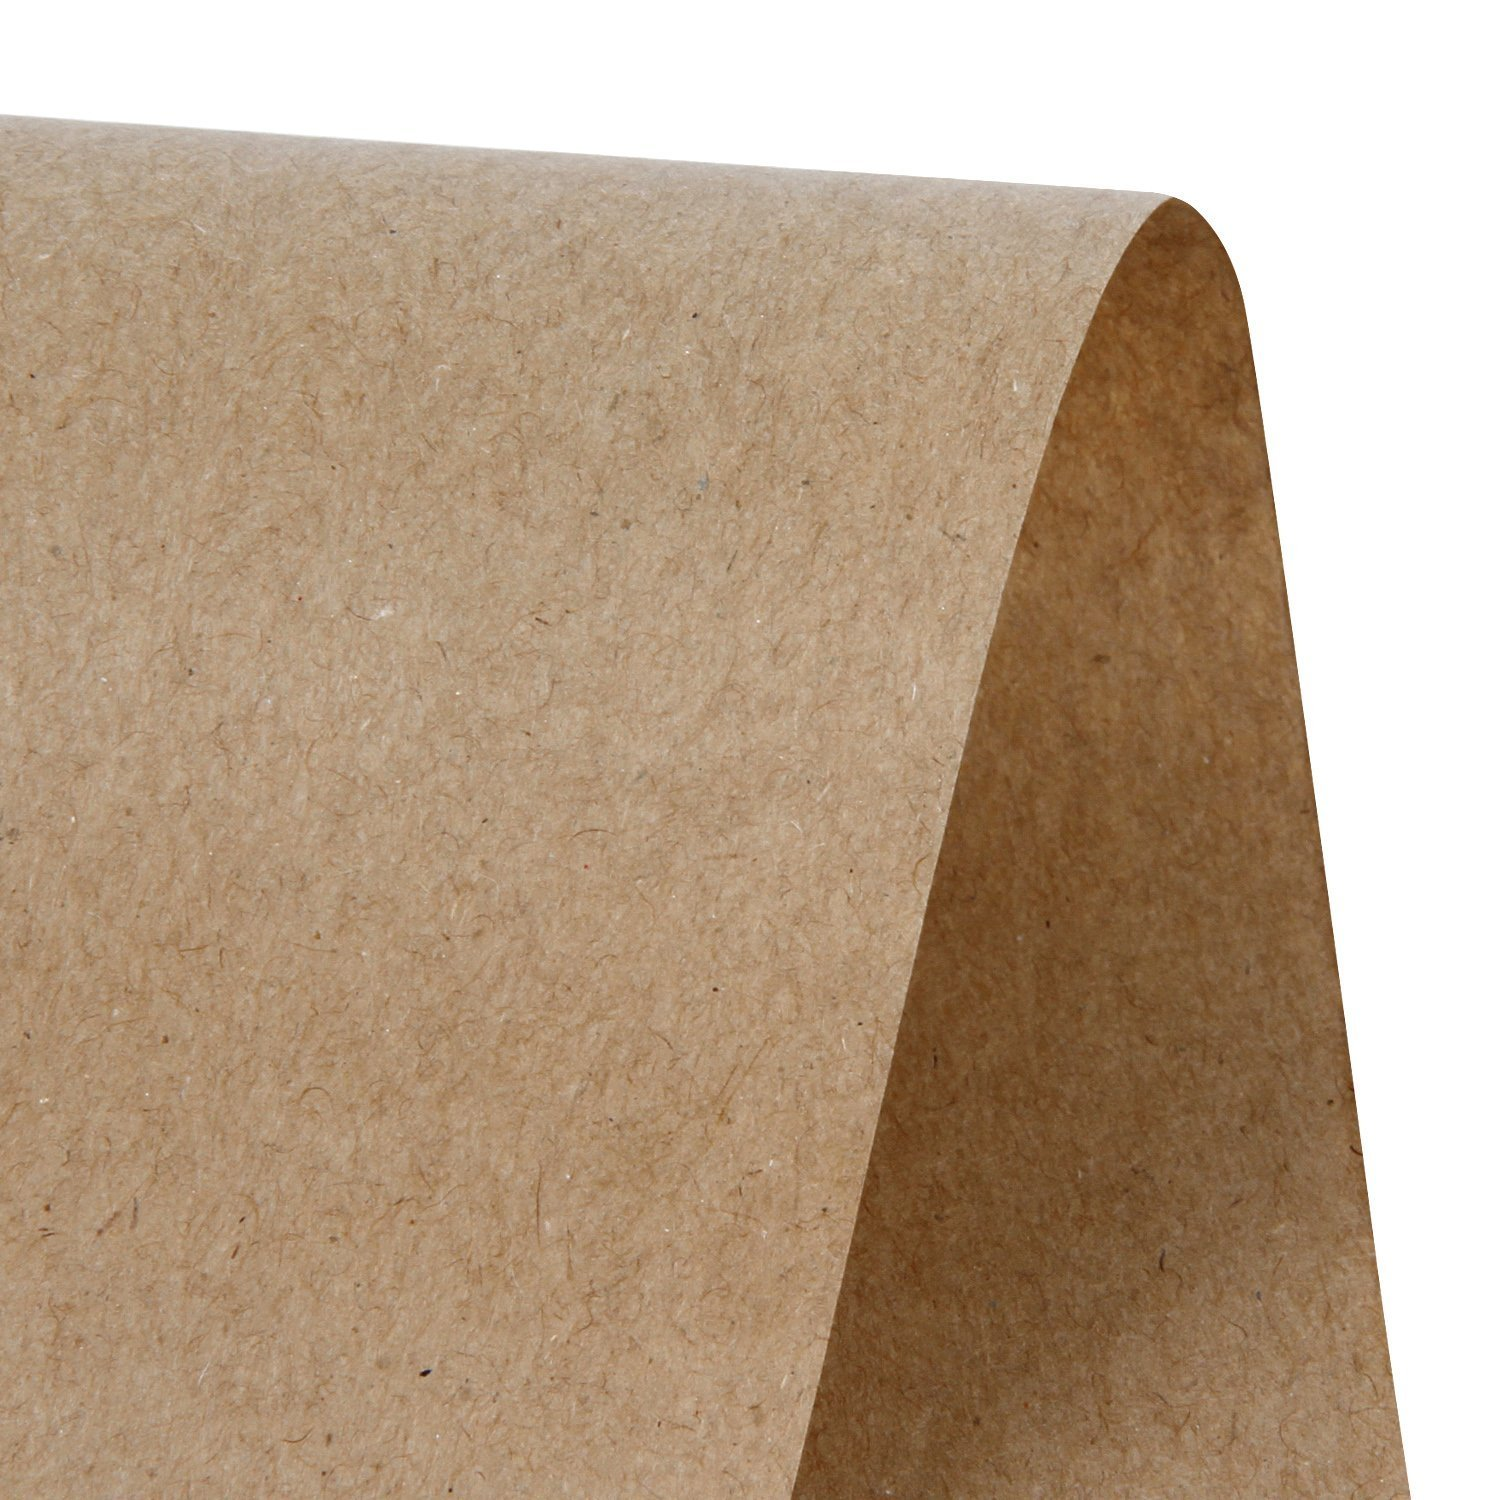 Brown Kraft Paper Roll 36 x 1800 Inches (150 Feet Long) 2 Rolls - 100% Recycled Material - Multi-Use for Crafts, Art, Gift Wrapping, Packing, Postal, Shipping, Dunnage & Parcel. by Woodpeckers